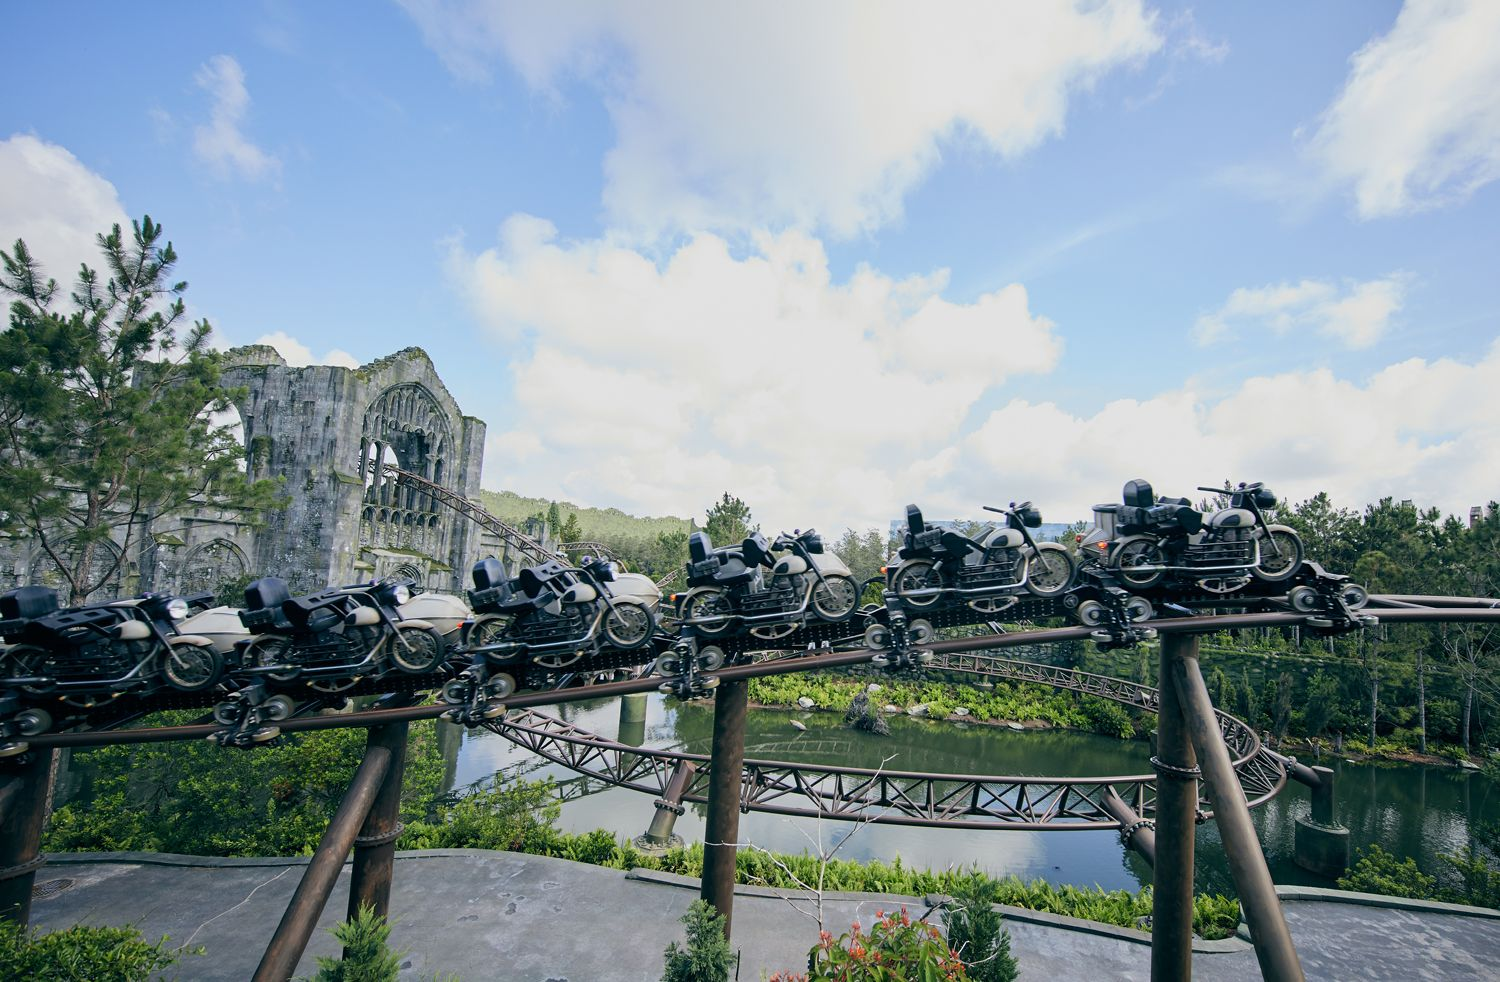 Hagrid's Magical Creatures Motorbike Adventure: 15 Things to